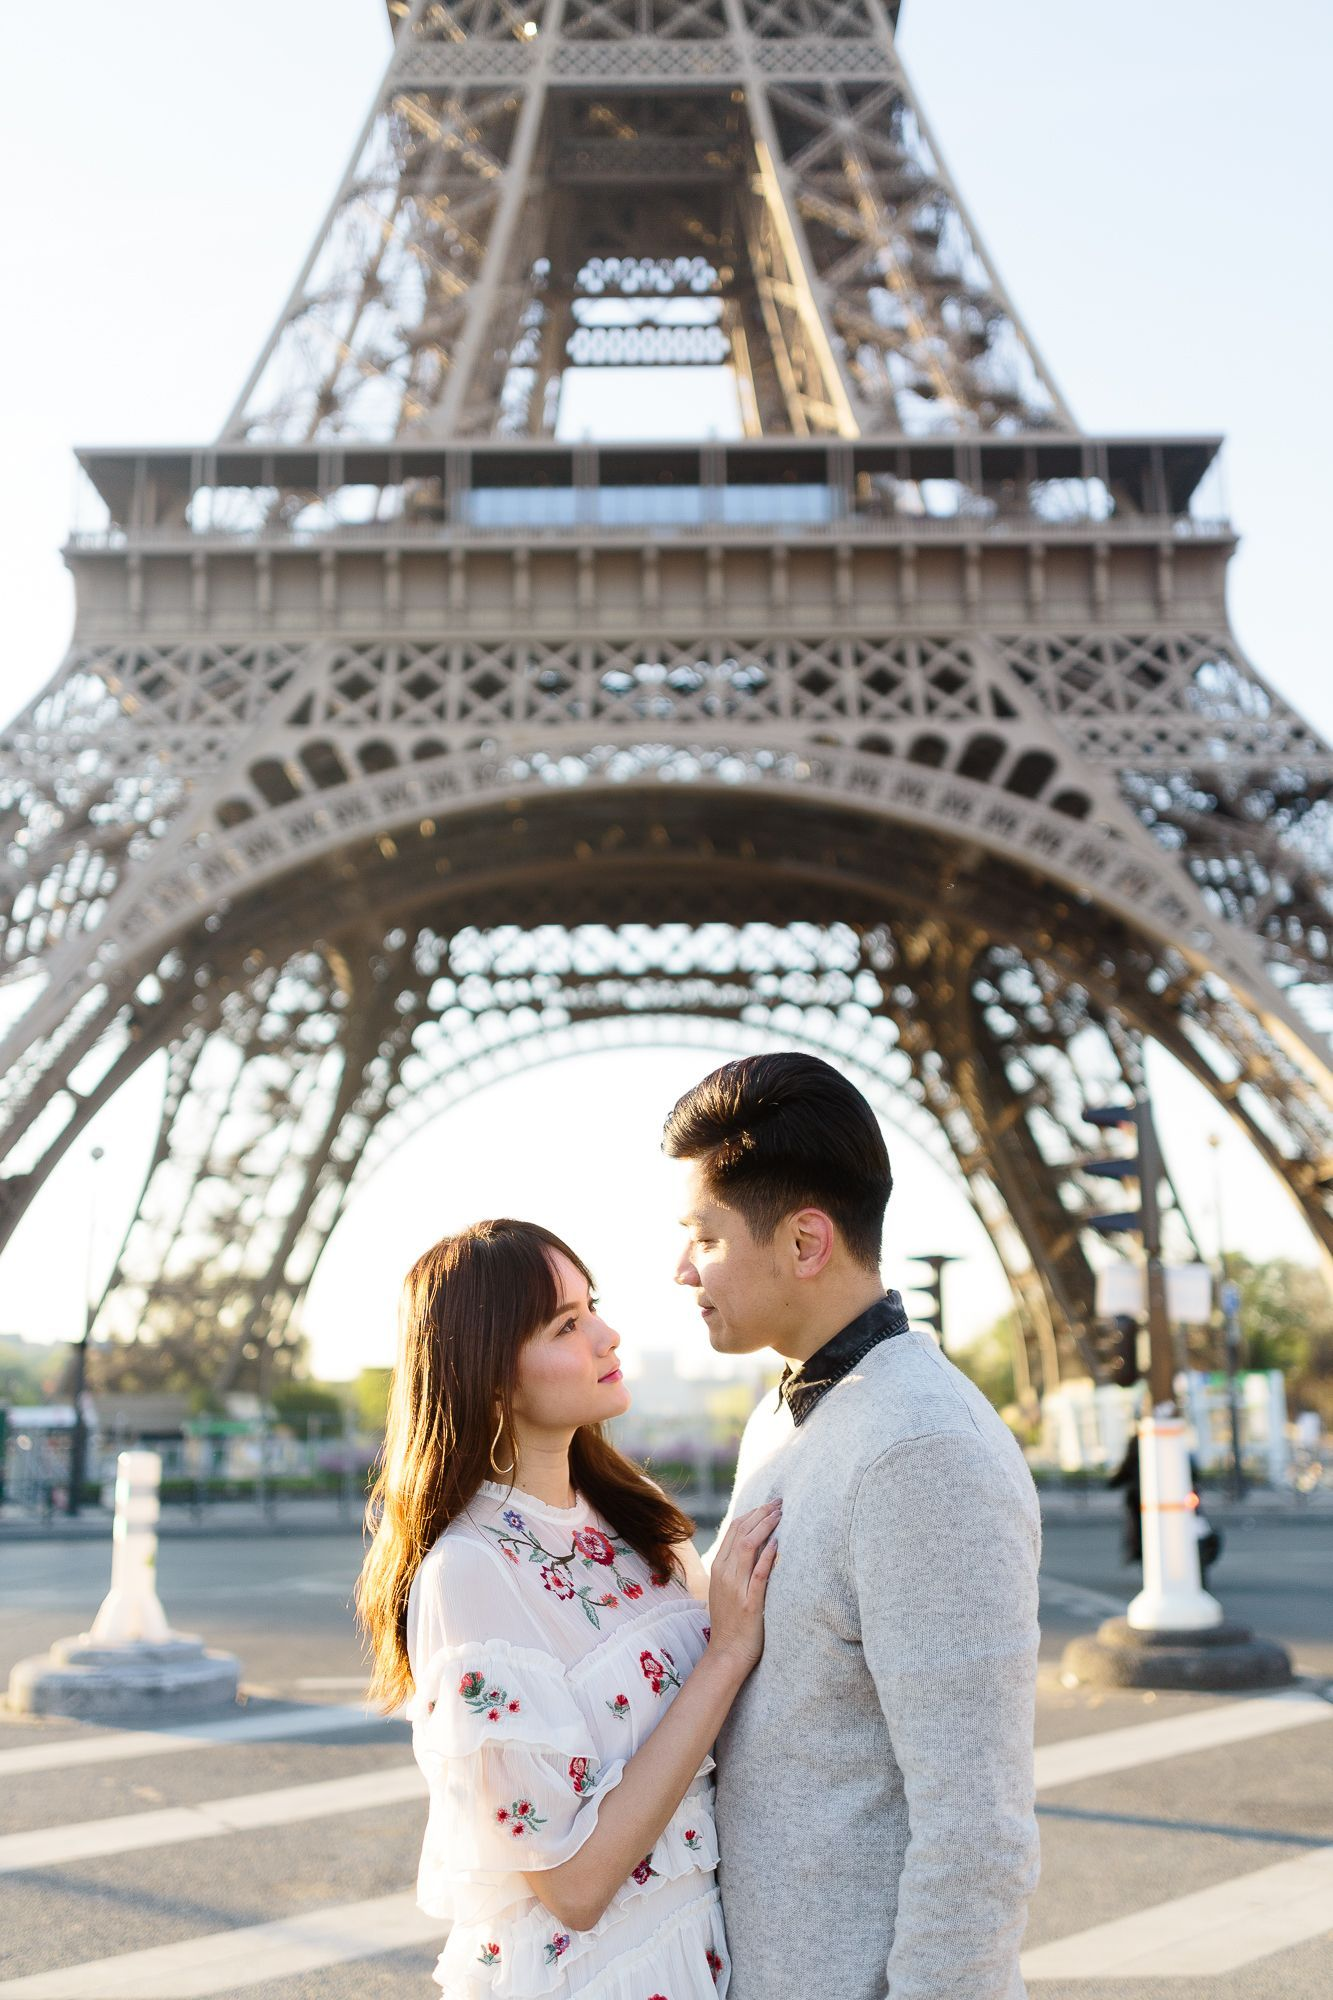 Paris Engagement Eifell in love with